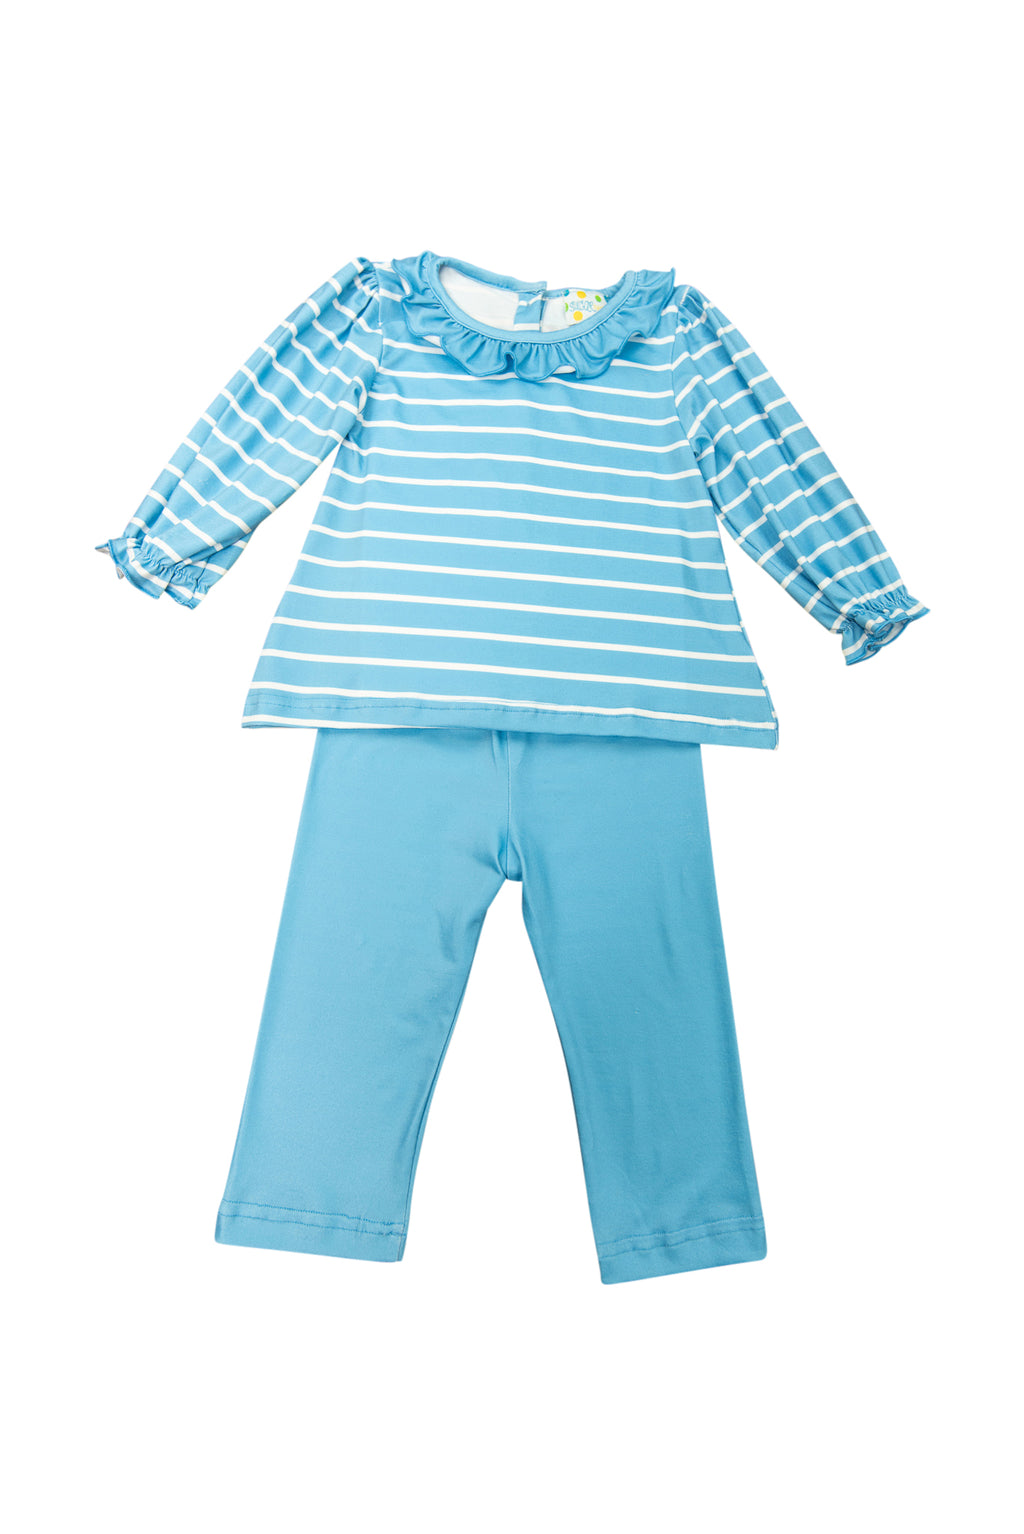 Girls Blue Stripes Pants Set